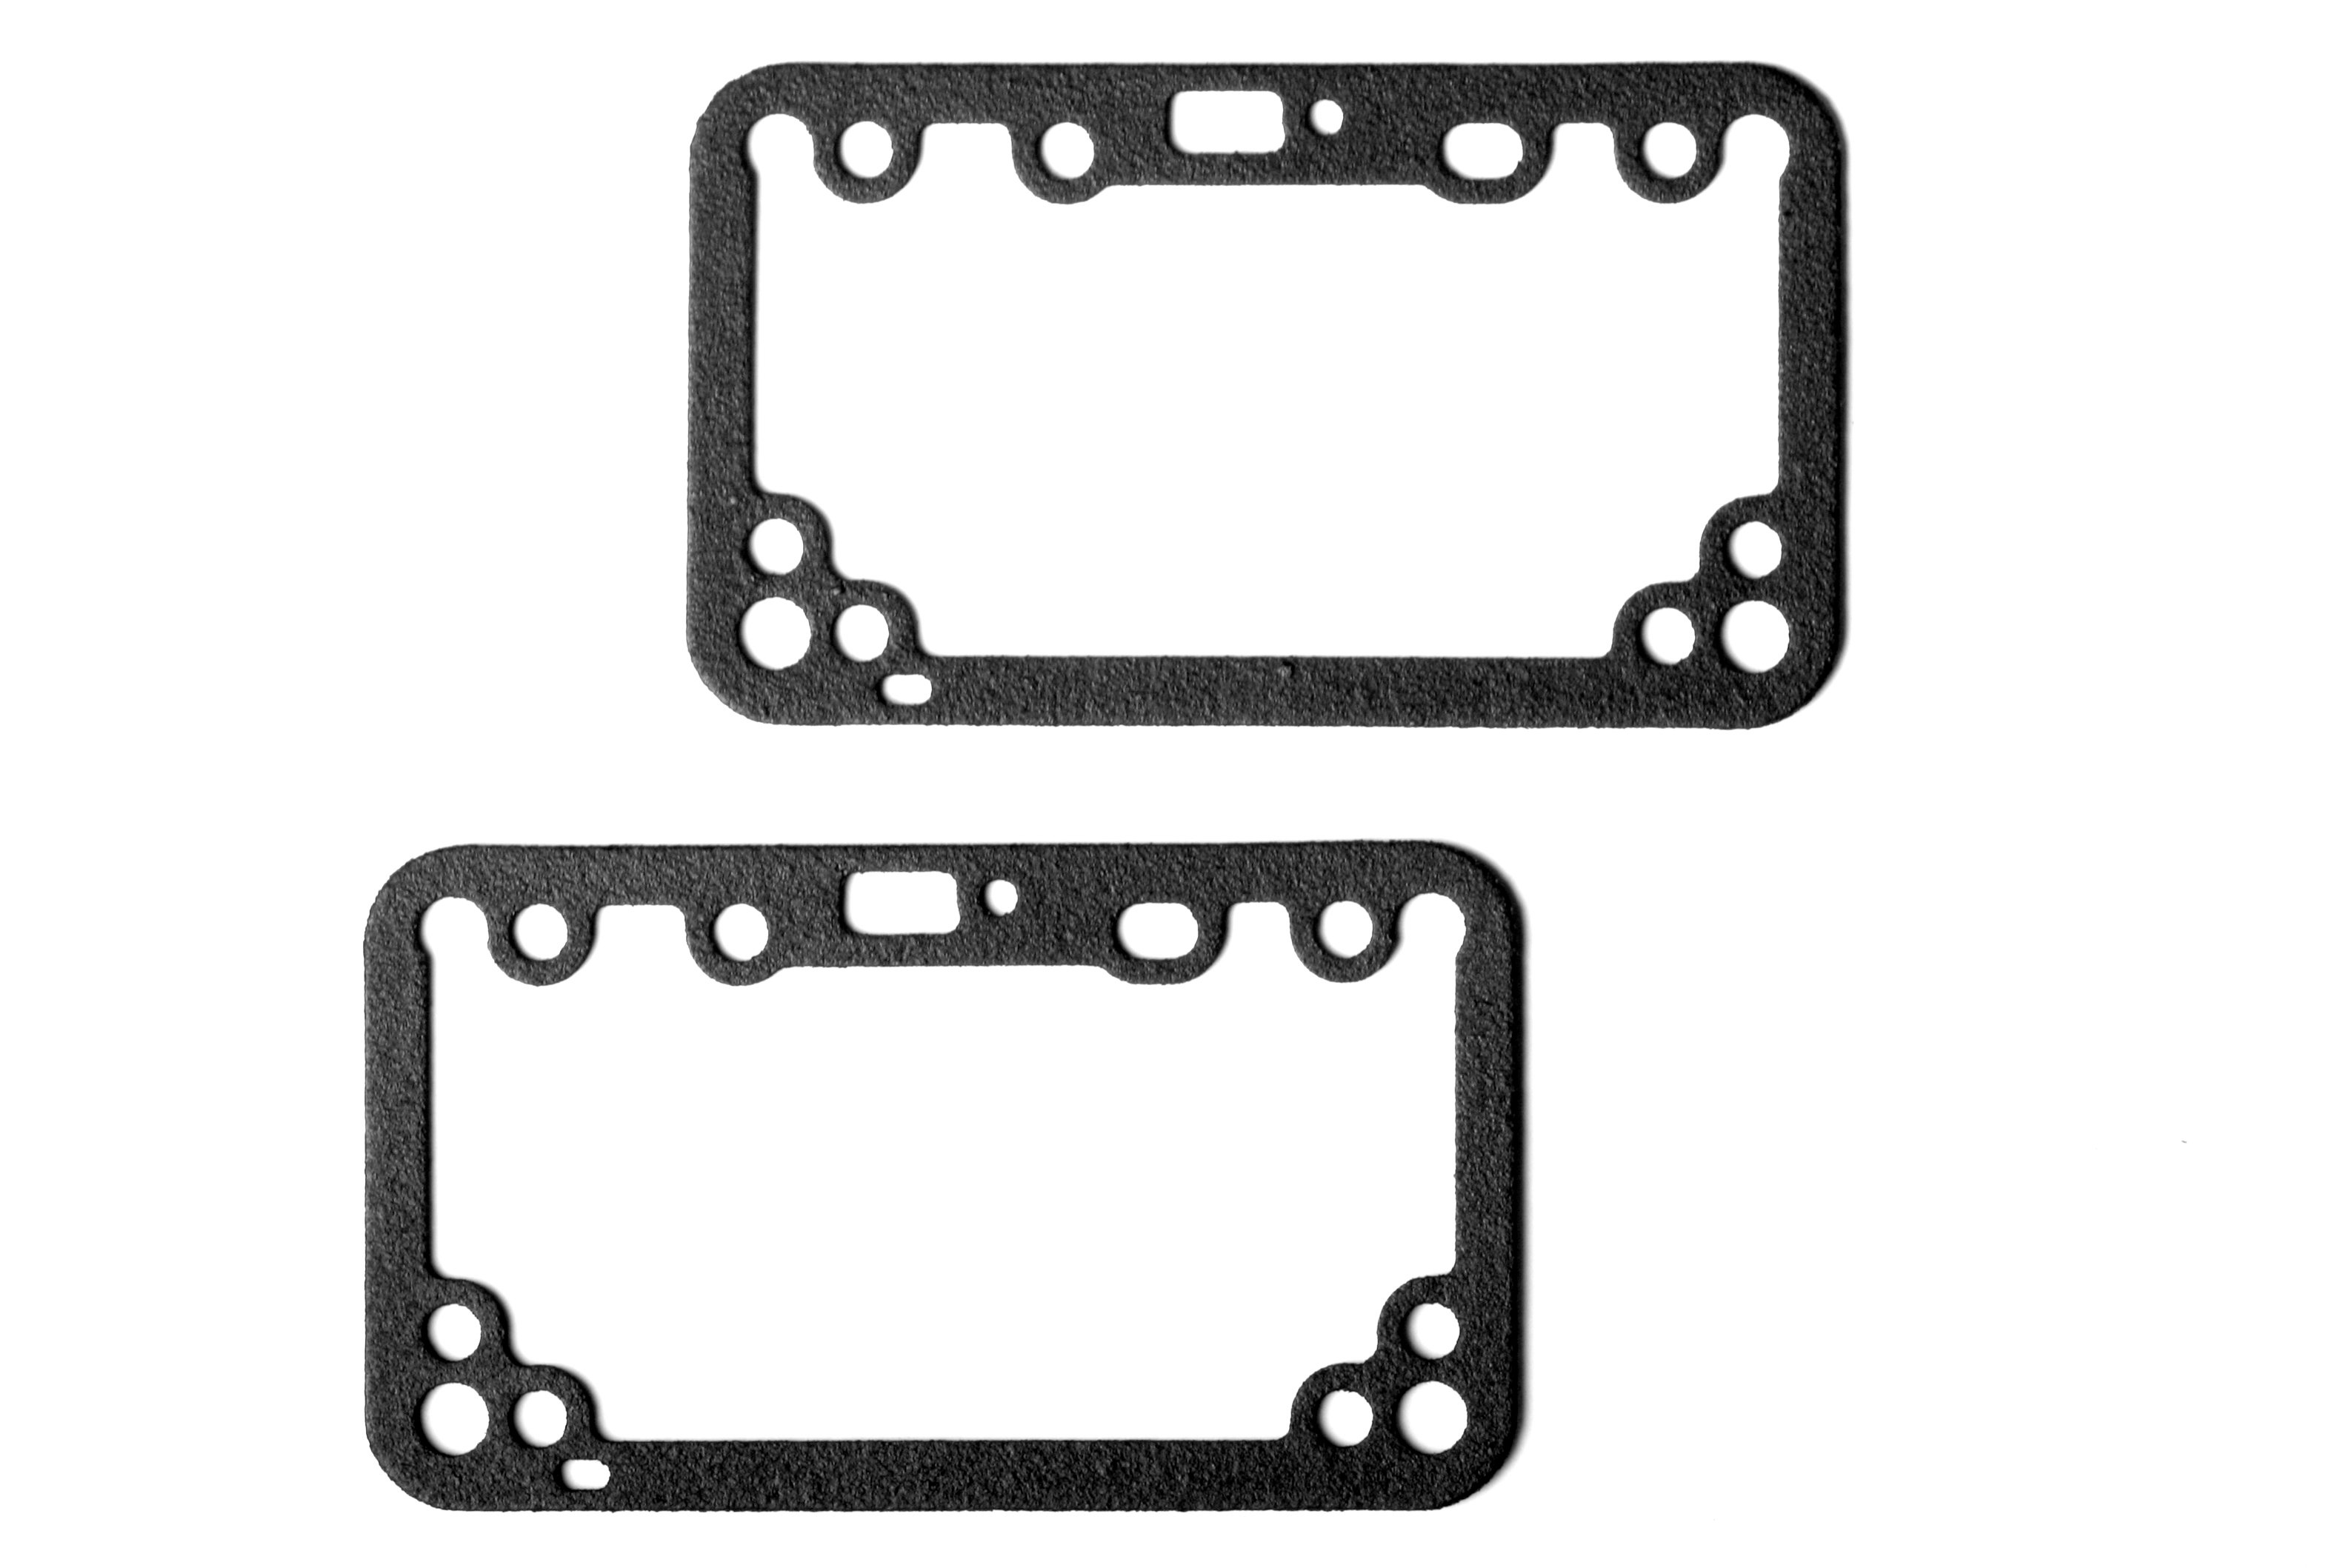 Holley 108 56 2 Fuel Bowl Gasket